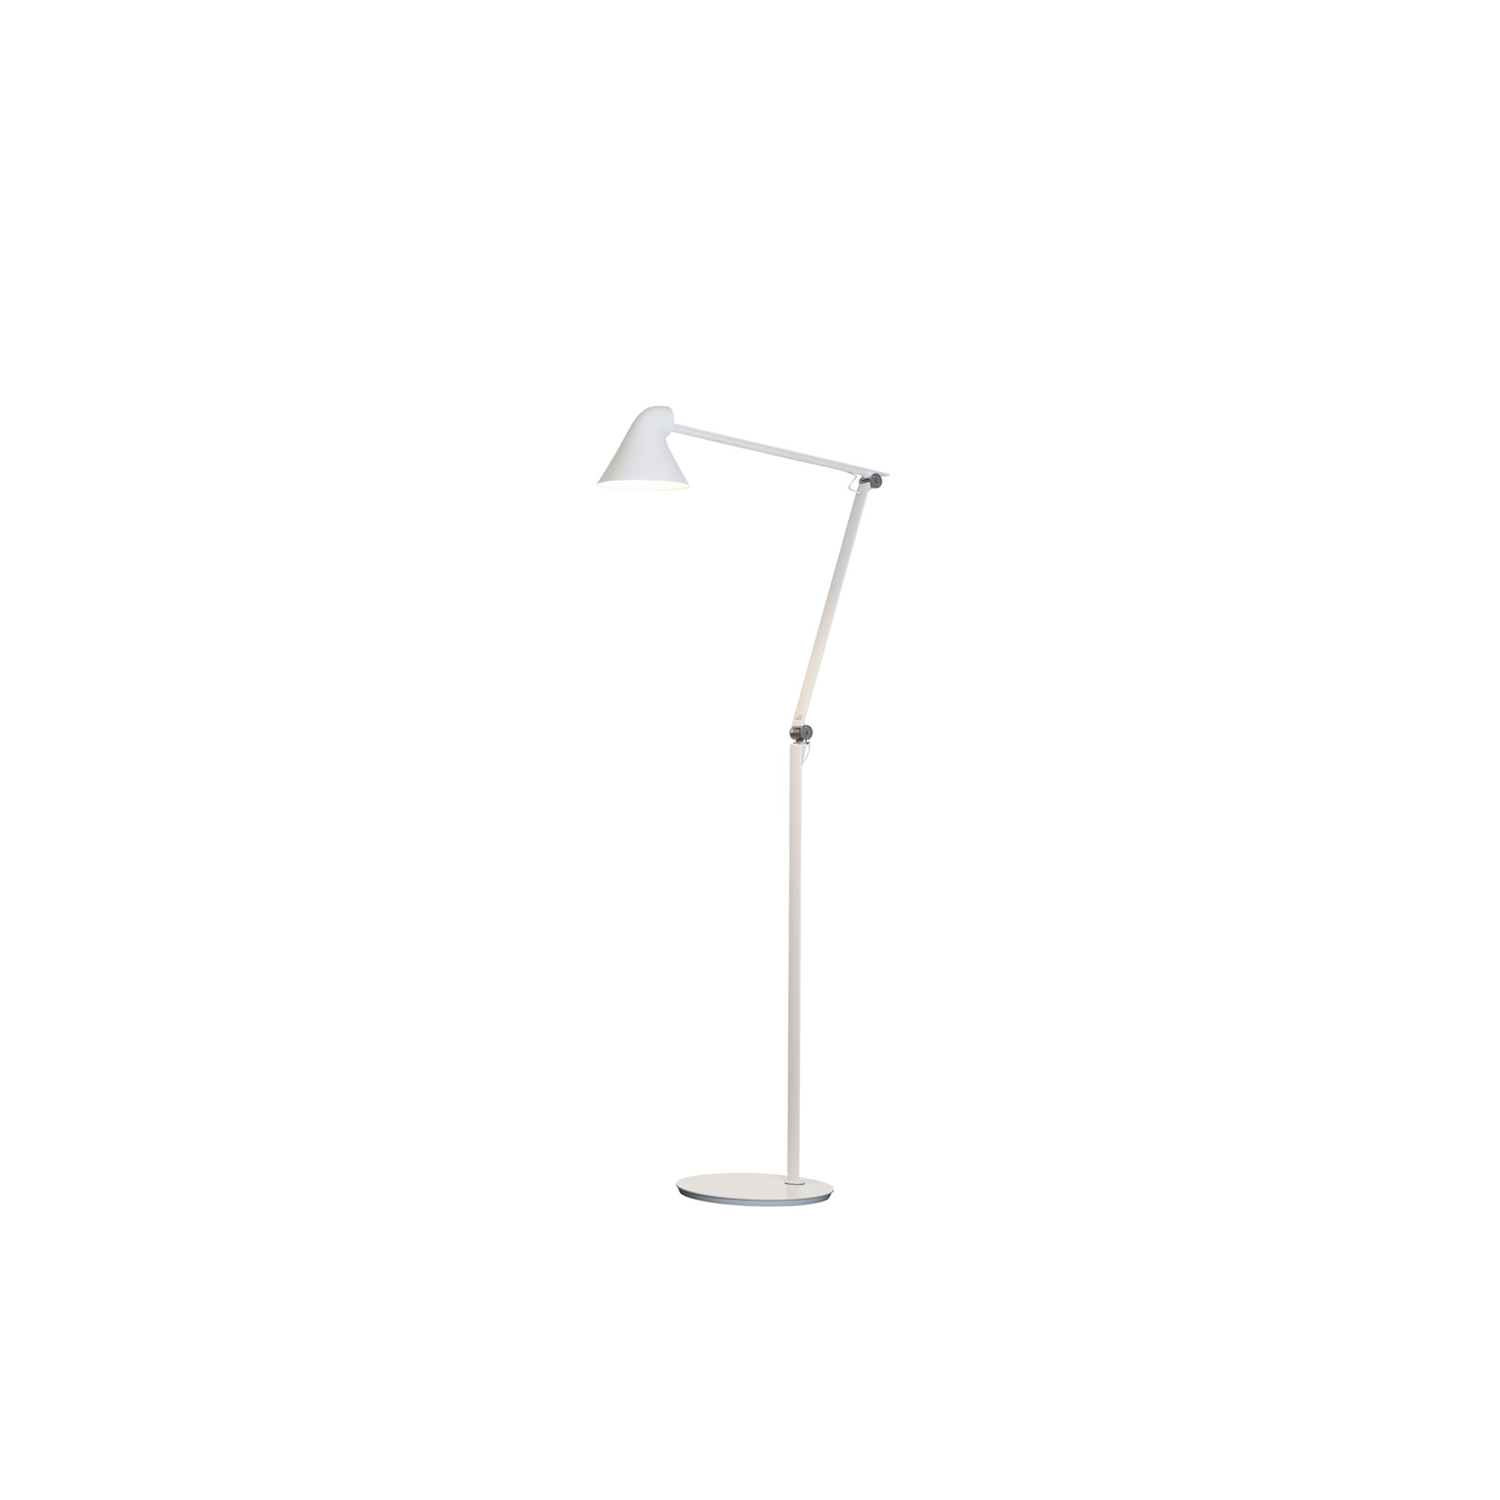 NJP Floor Light - The fixture provides direct glare-free horizontal light while reflecting some of the light through the rear of the head, illuminating the top of the arm. The ergonomic design of the fixture head shapes the light and gives optimal light direction. A simple mechanical system provides great freedom of movement, so the light can always be set in the ideal position in the workspace. The shade is painted white on the inside, reflecting comfortable diffused light. | Matter of Stuff